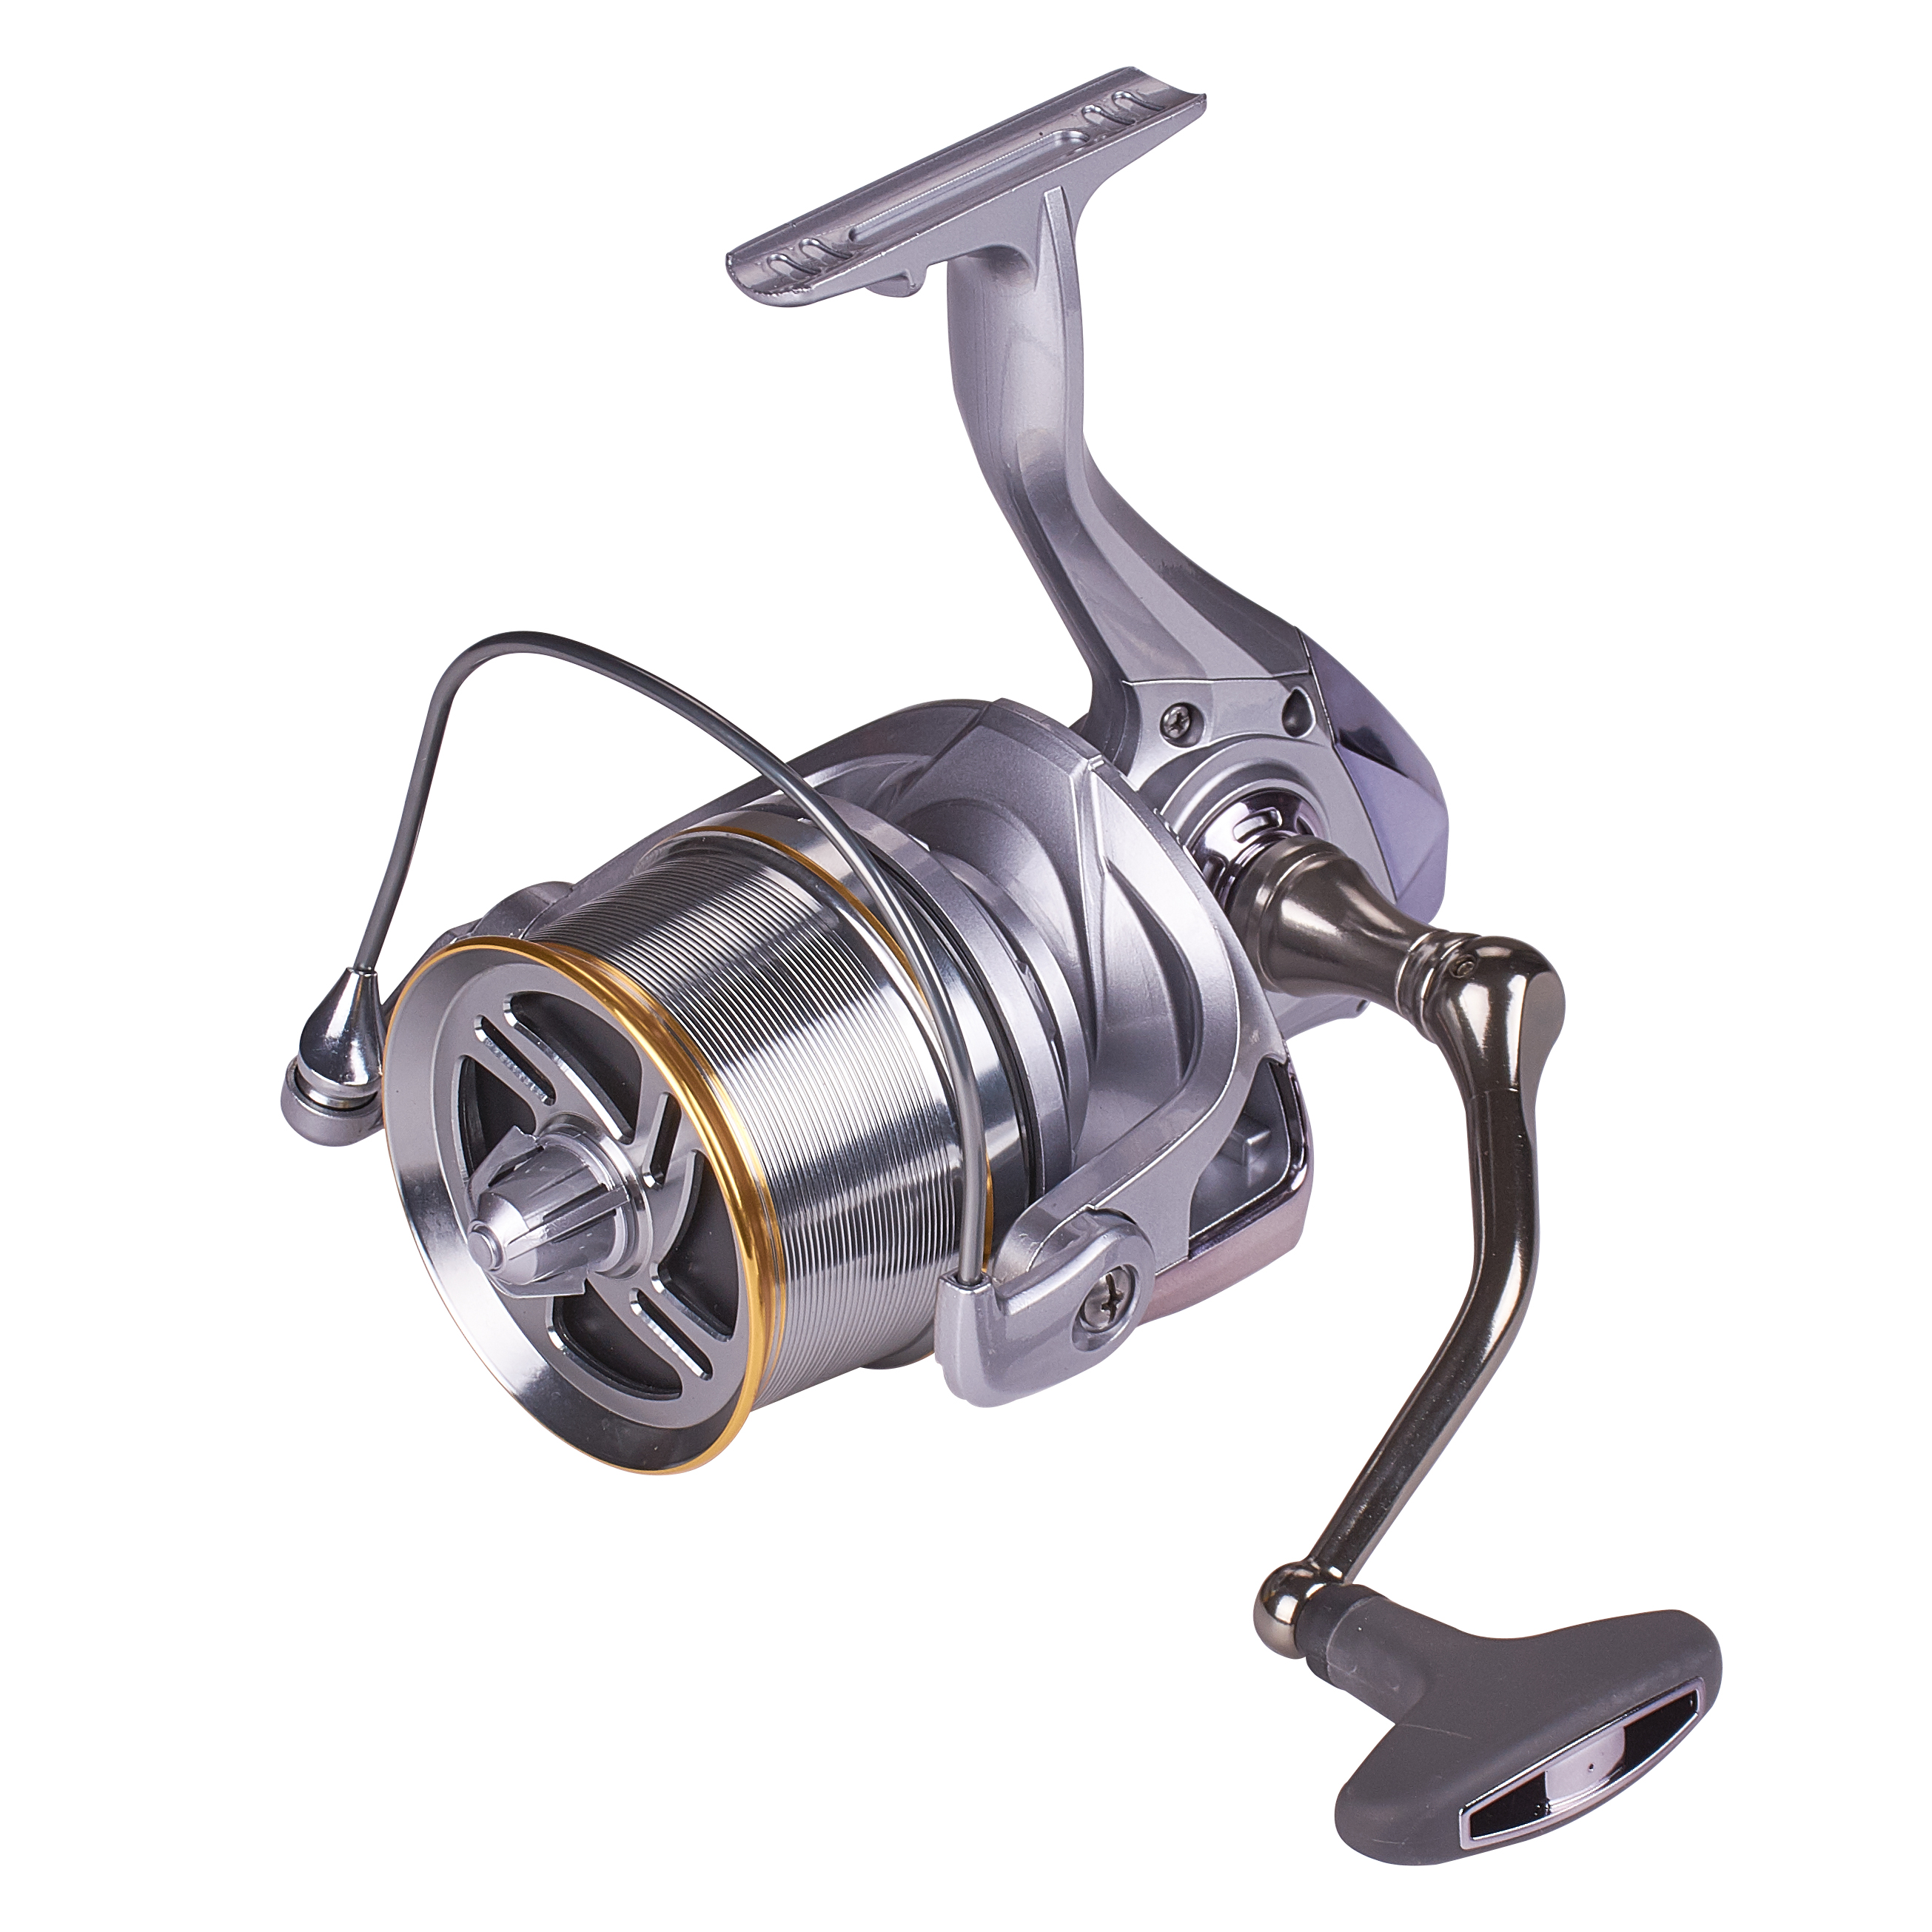 HiUmi STD8500 Wind Surf Thigh Spinning Fishing Reel  Jigging Trolling Long Shot Casting Big Sea Salt Water Fishing Reel